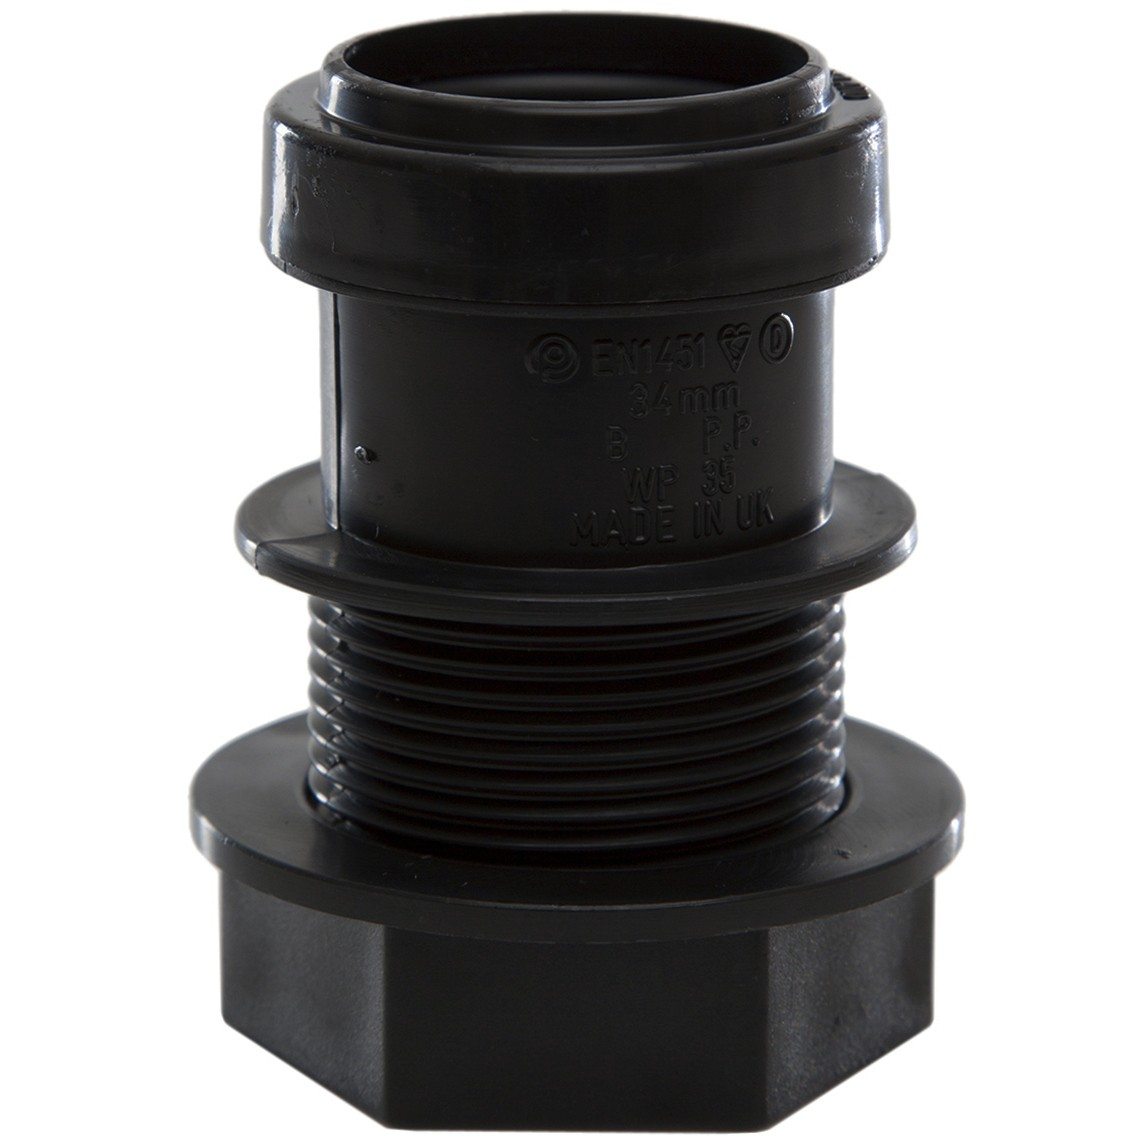 Polypipe 32mm Push Fit Waste Tank Connector - Black